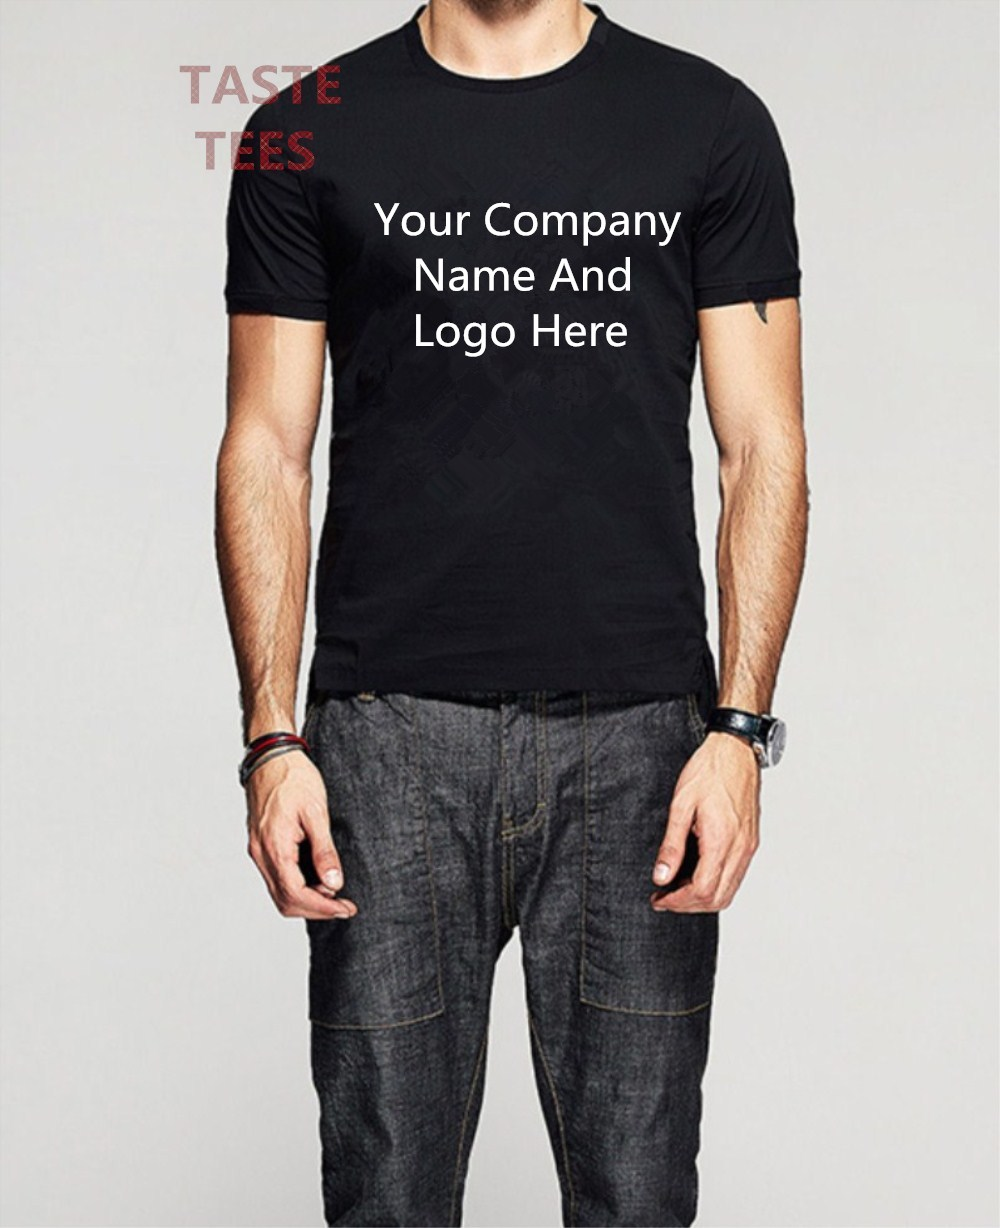 Design your own t-shirt for dogs - Custom Men T Shirt Your Name And Number Pure Cotton Casual T Shirts Print Your Own Design High Quality Shirt Size S 3xl